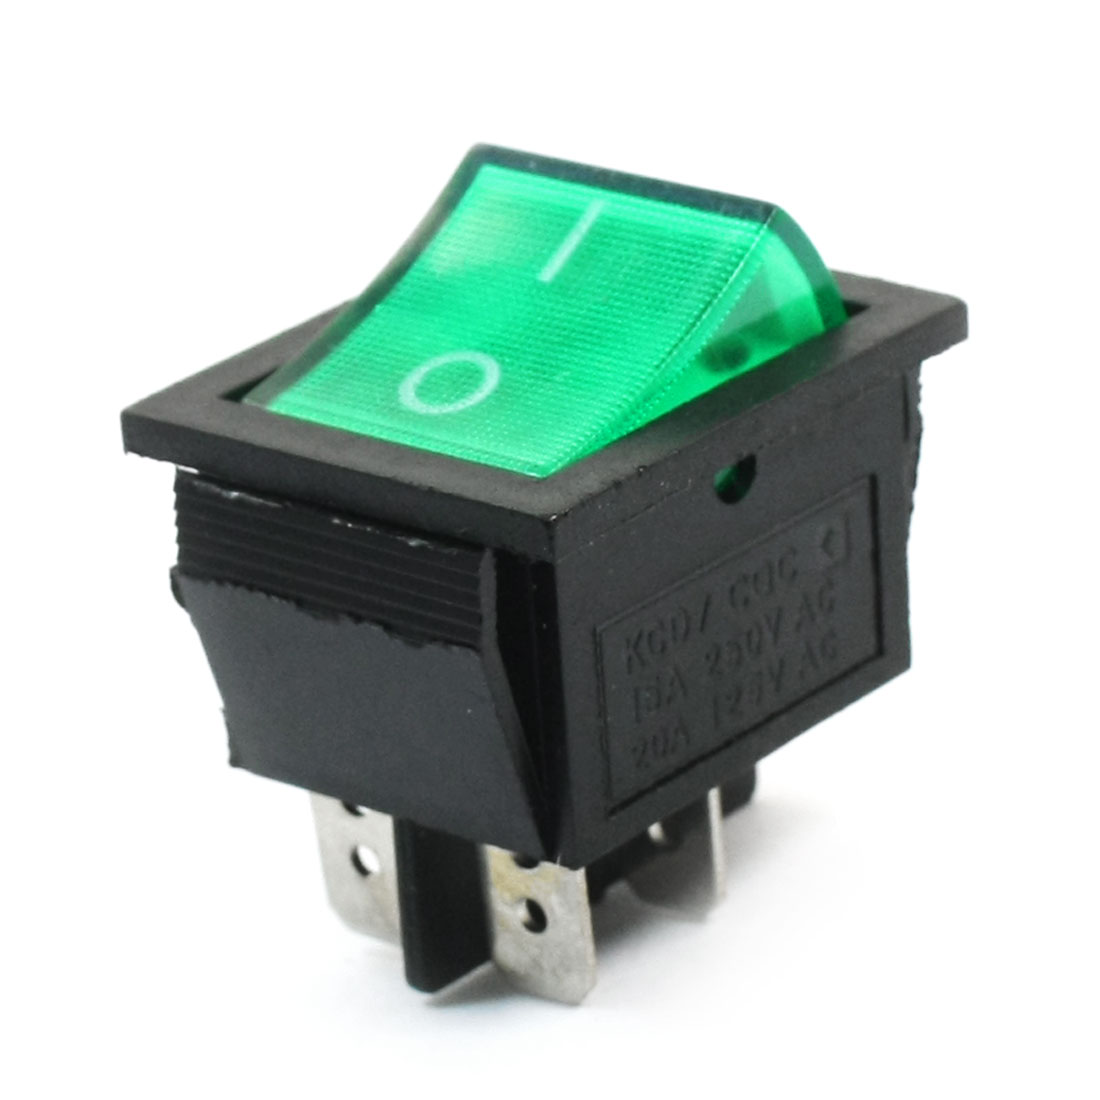 AC 110-220V Lamp Volt Green Button SPDT 2 Position Soldering Boat Rocker Switch